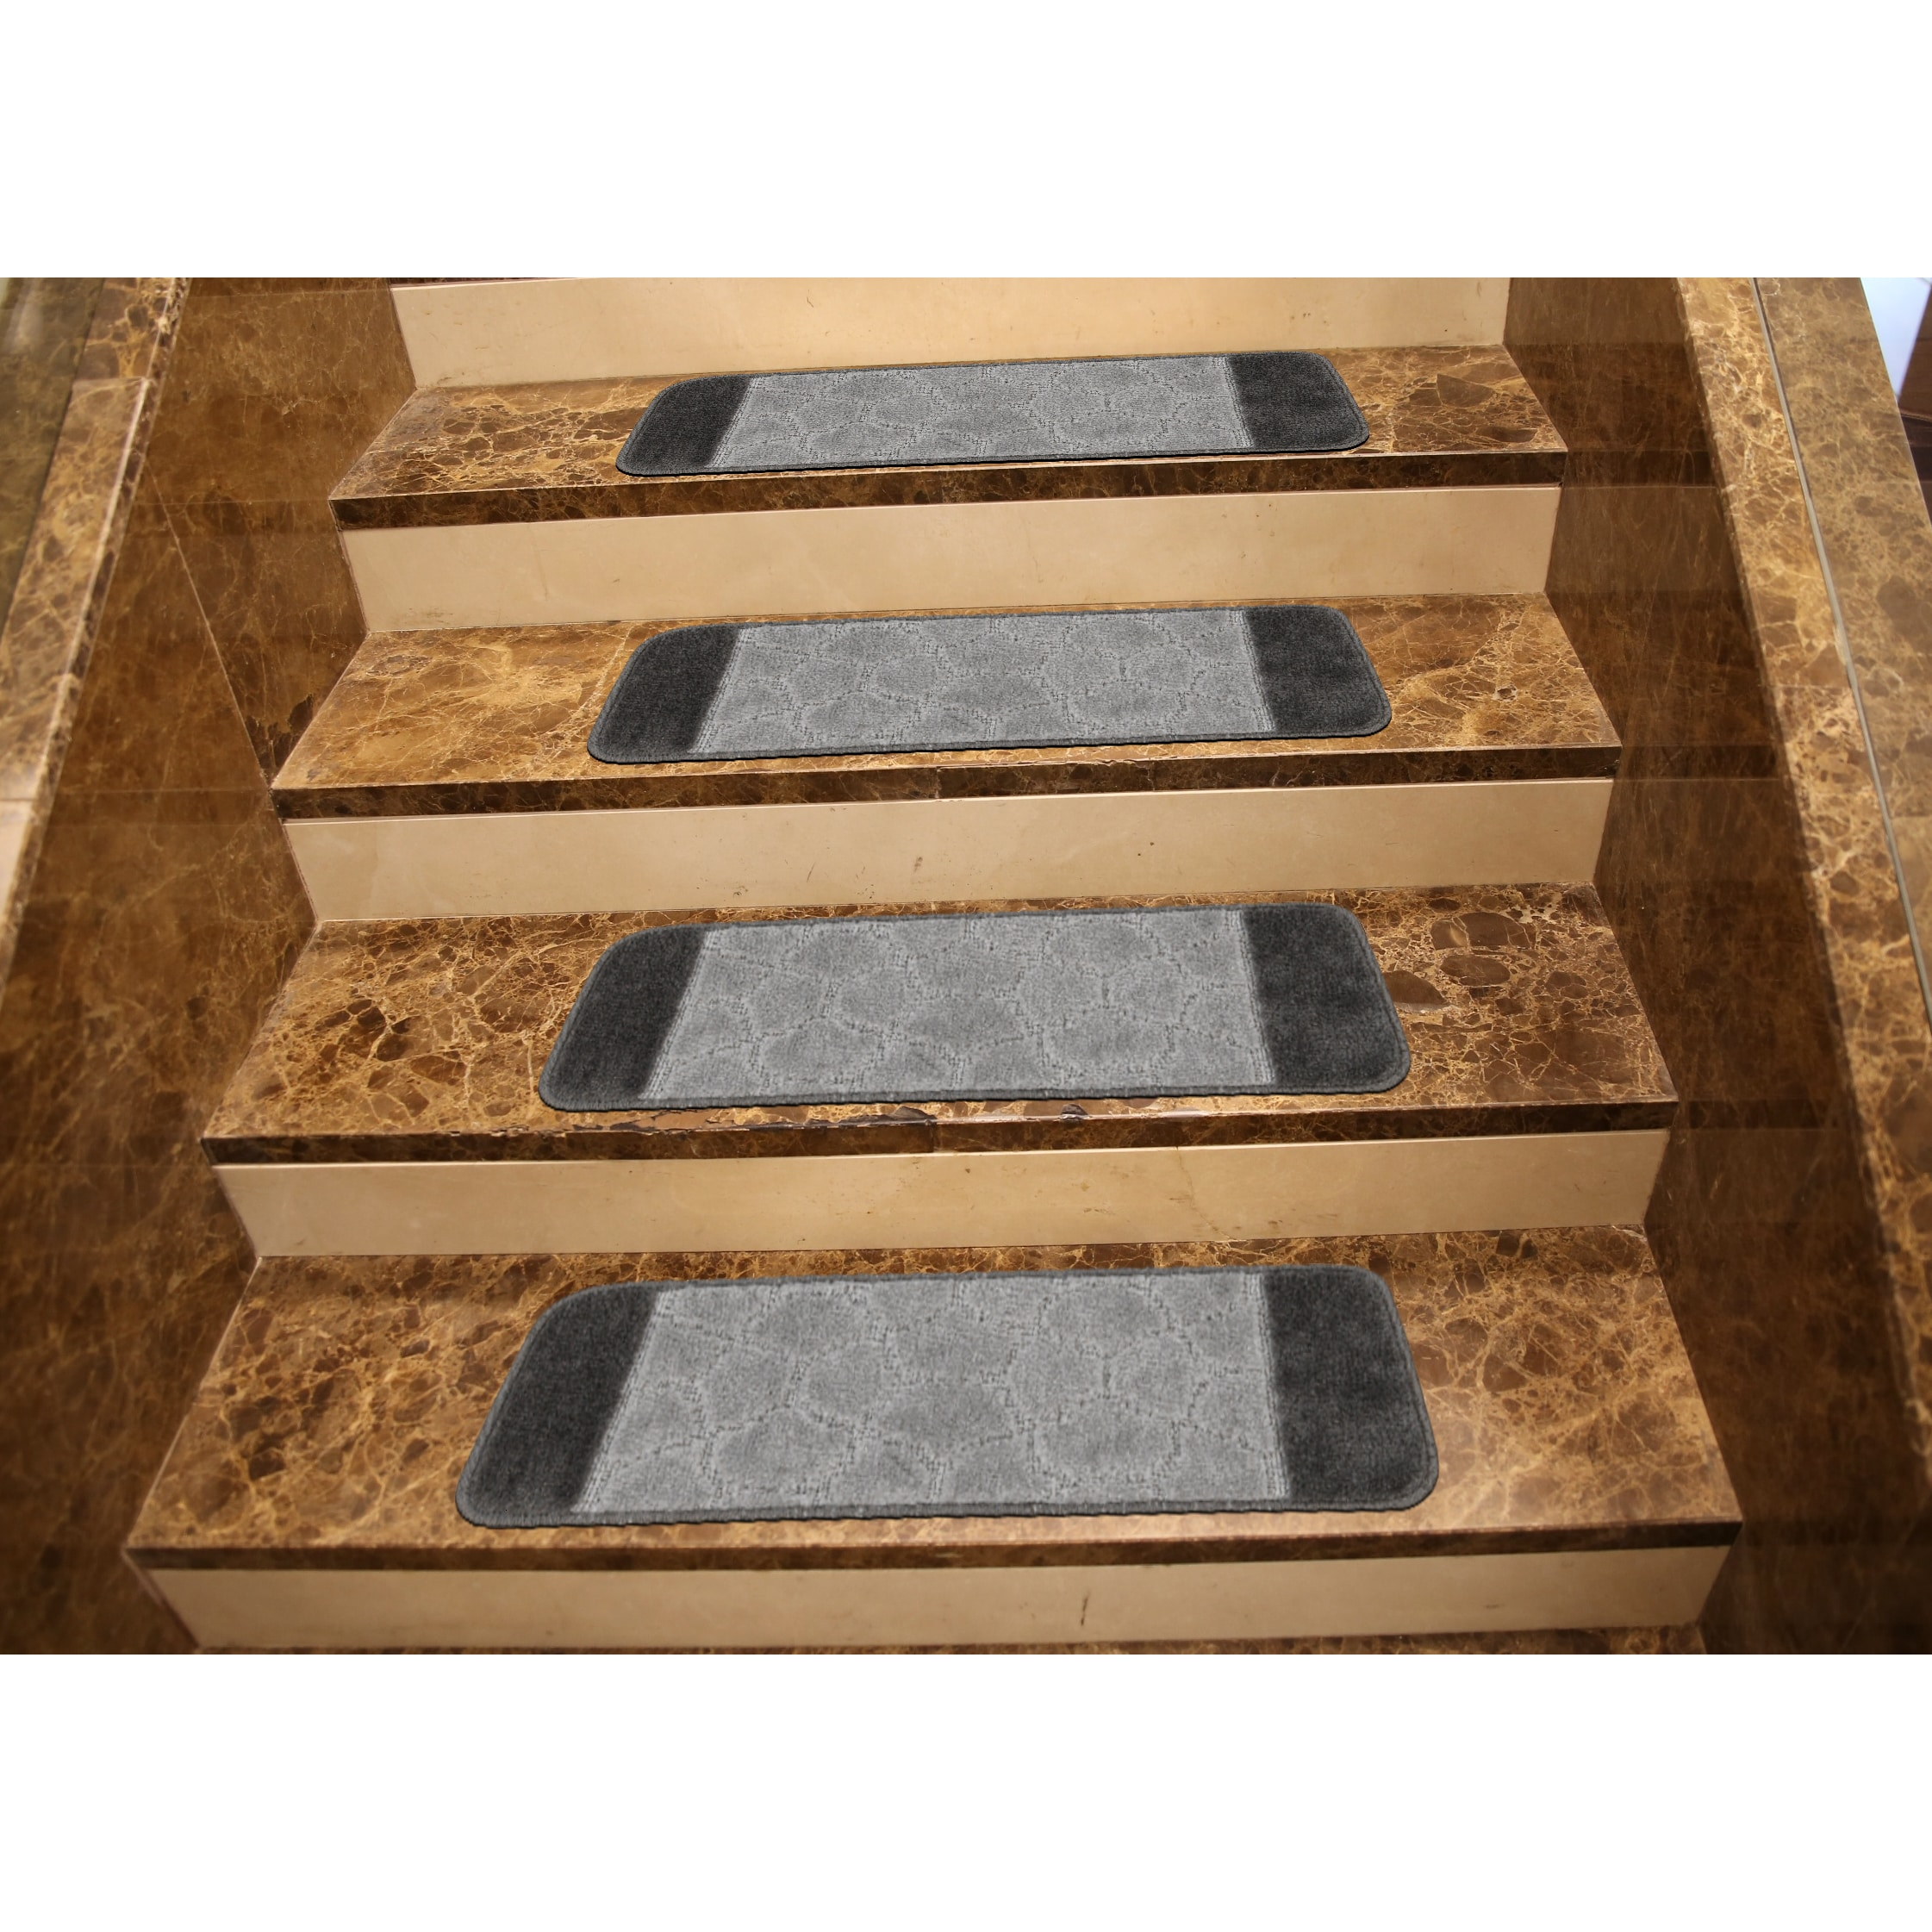 rubber slip outside tread how outdoor anti amazon covering non buy winter open for full italiapost build stair vinyl mats stairs exterior aluminum decorative deck to covers canada step skid nosing skids metal of designs treads size protective info carpet outdoors runner commercial